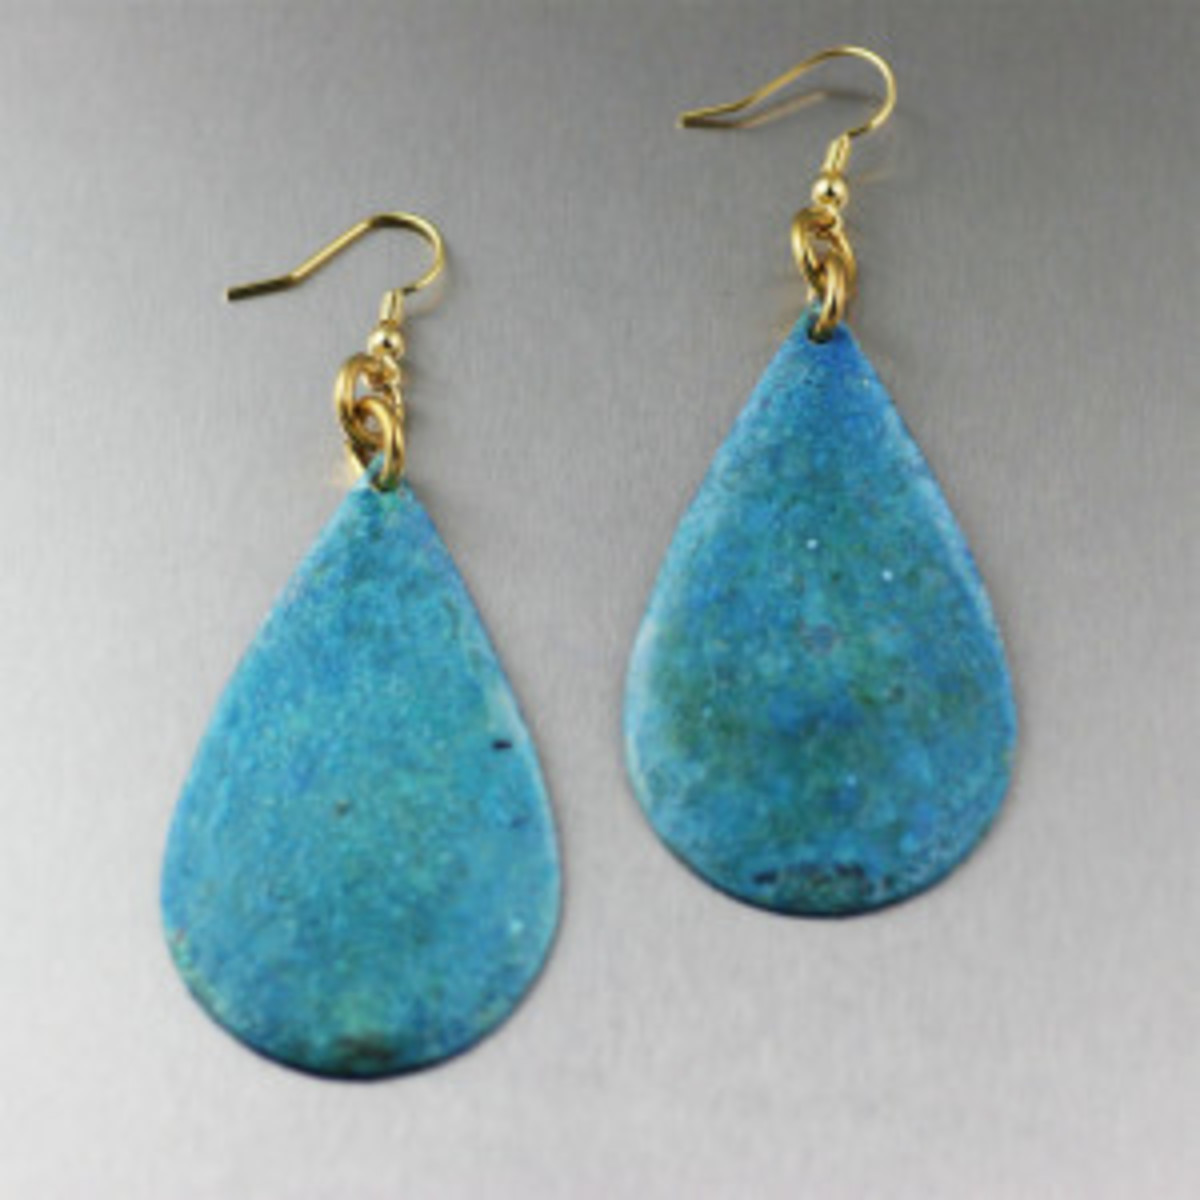 Handmade Blue Patinated Tear Drop Copper Earrings